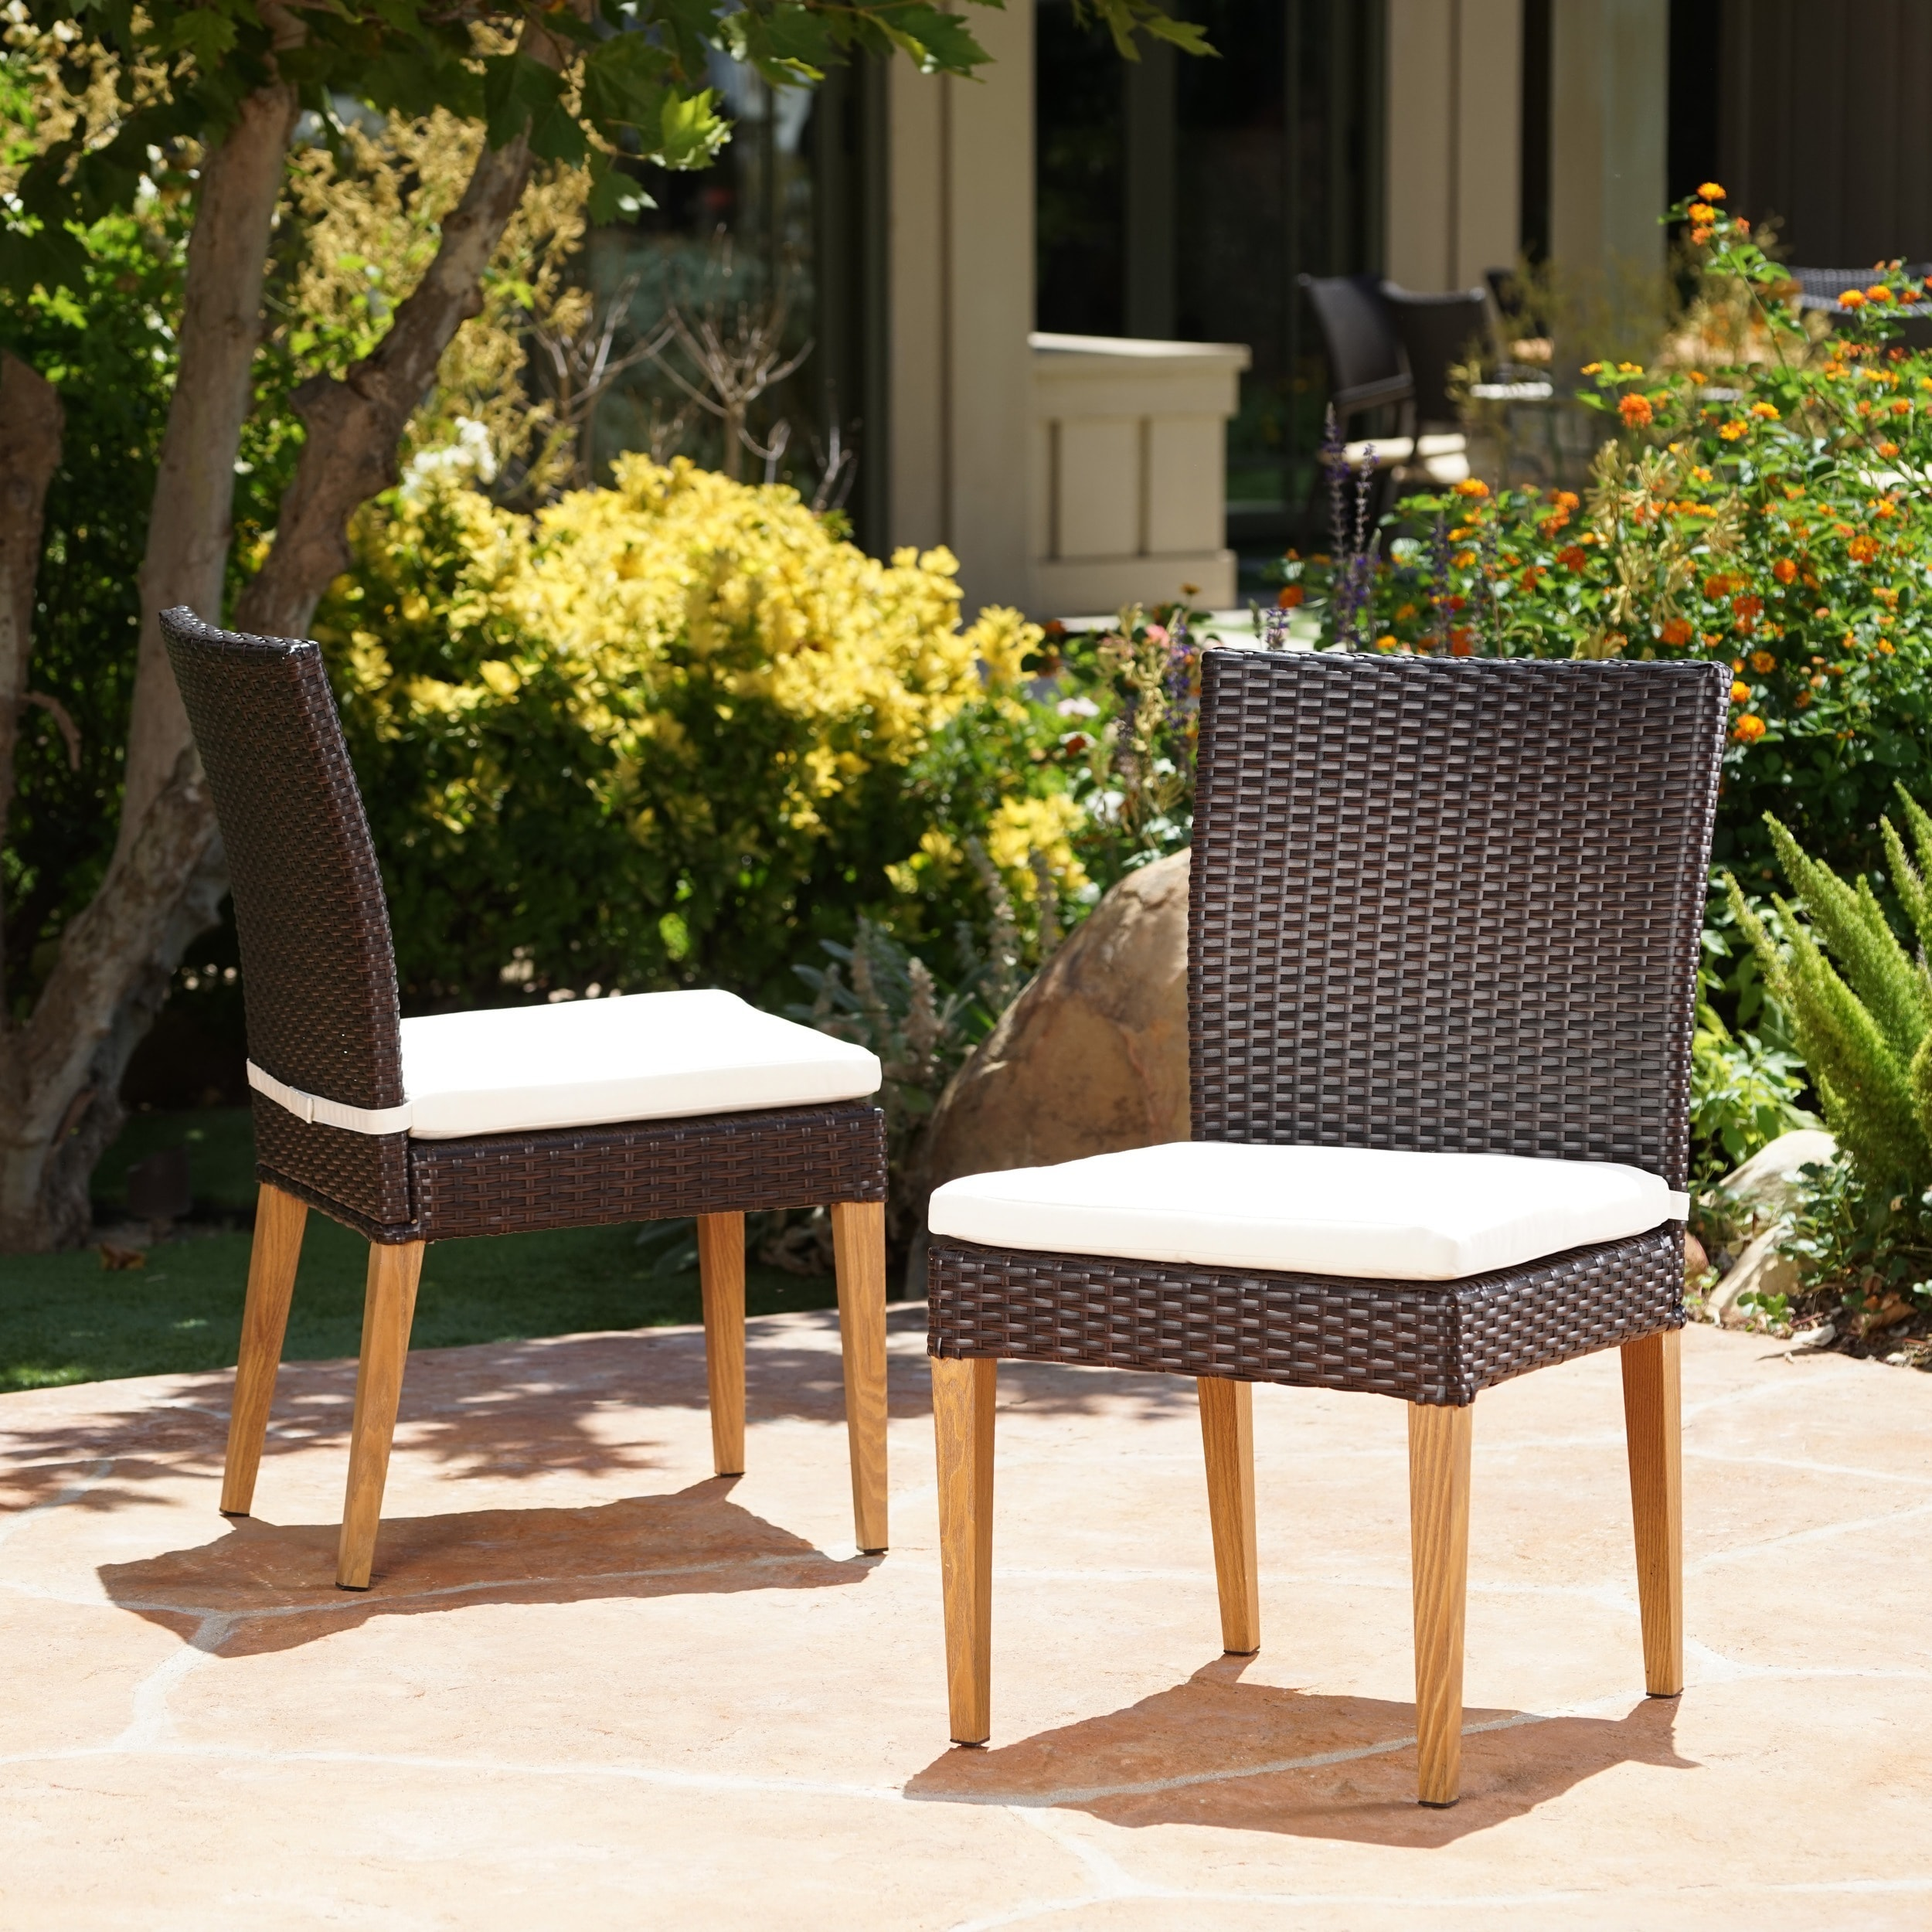 Shop Santa Barbara Outdoor Wicker Dining Chair With Cushion (Set Of 2) By  Christopher Knight Home   On Sale   Free Shipping Today   Overstock.com    16888588